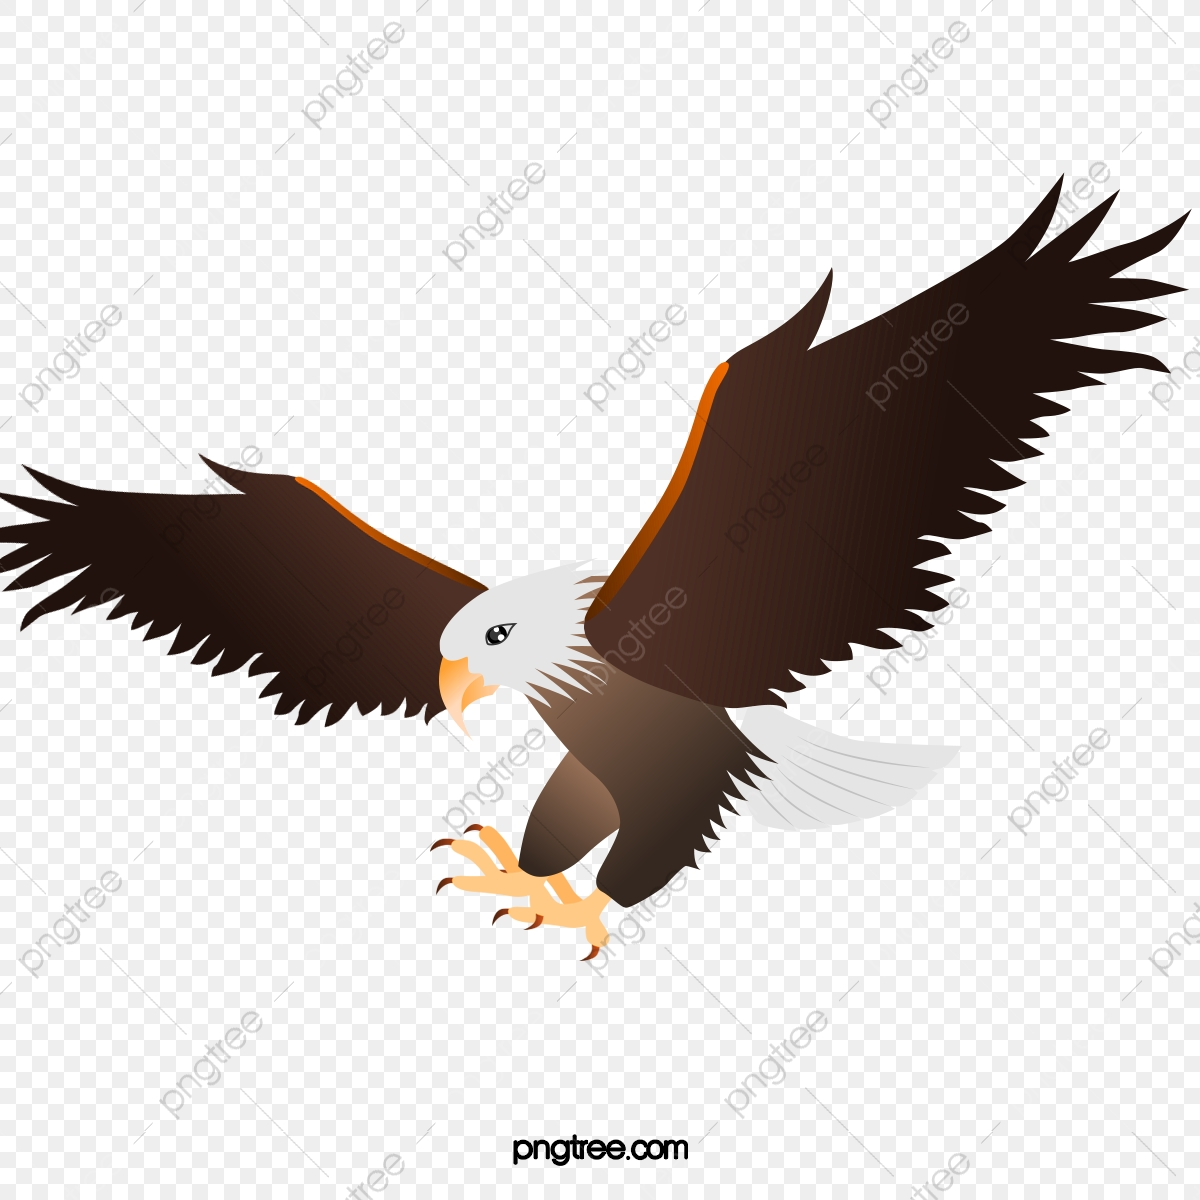 hight resolution of category eagle